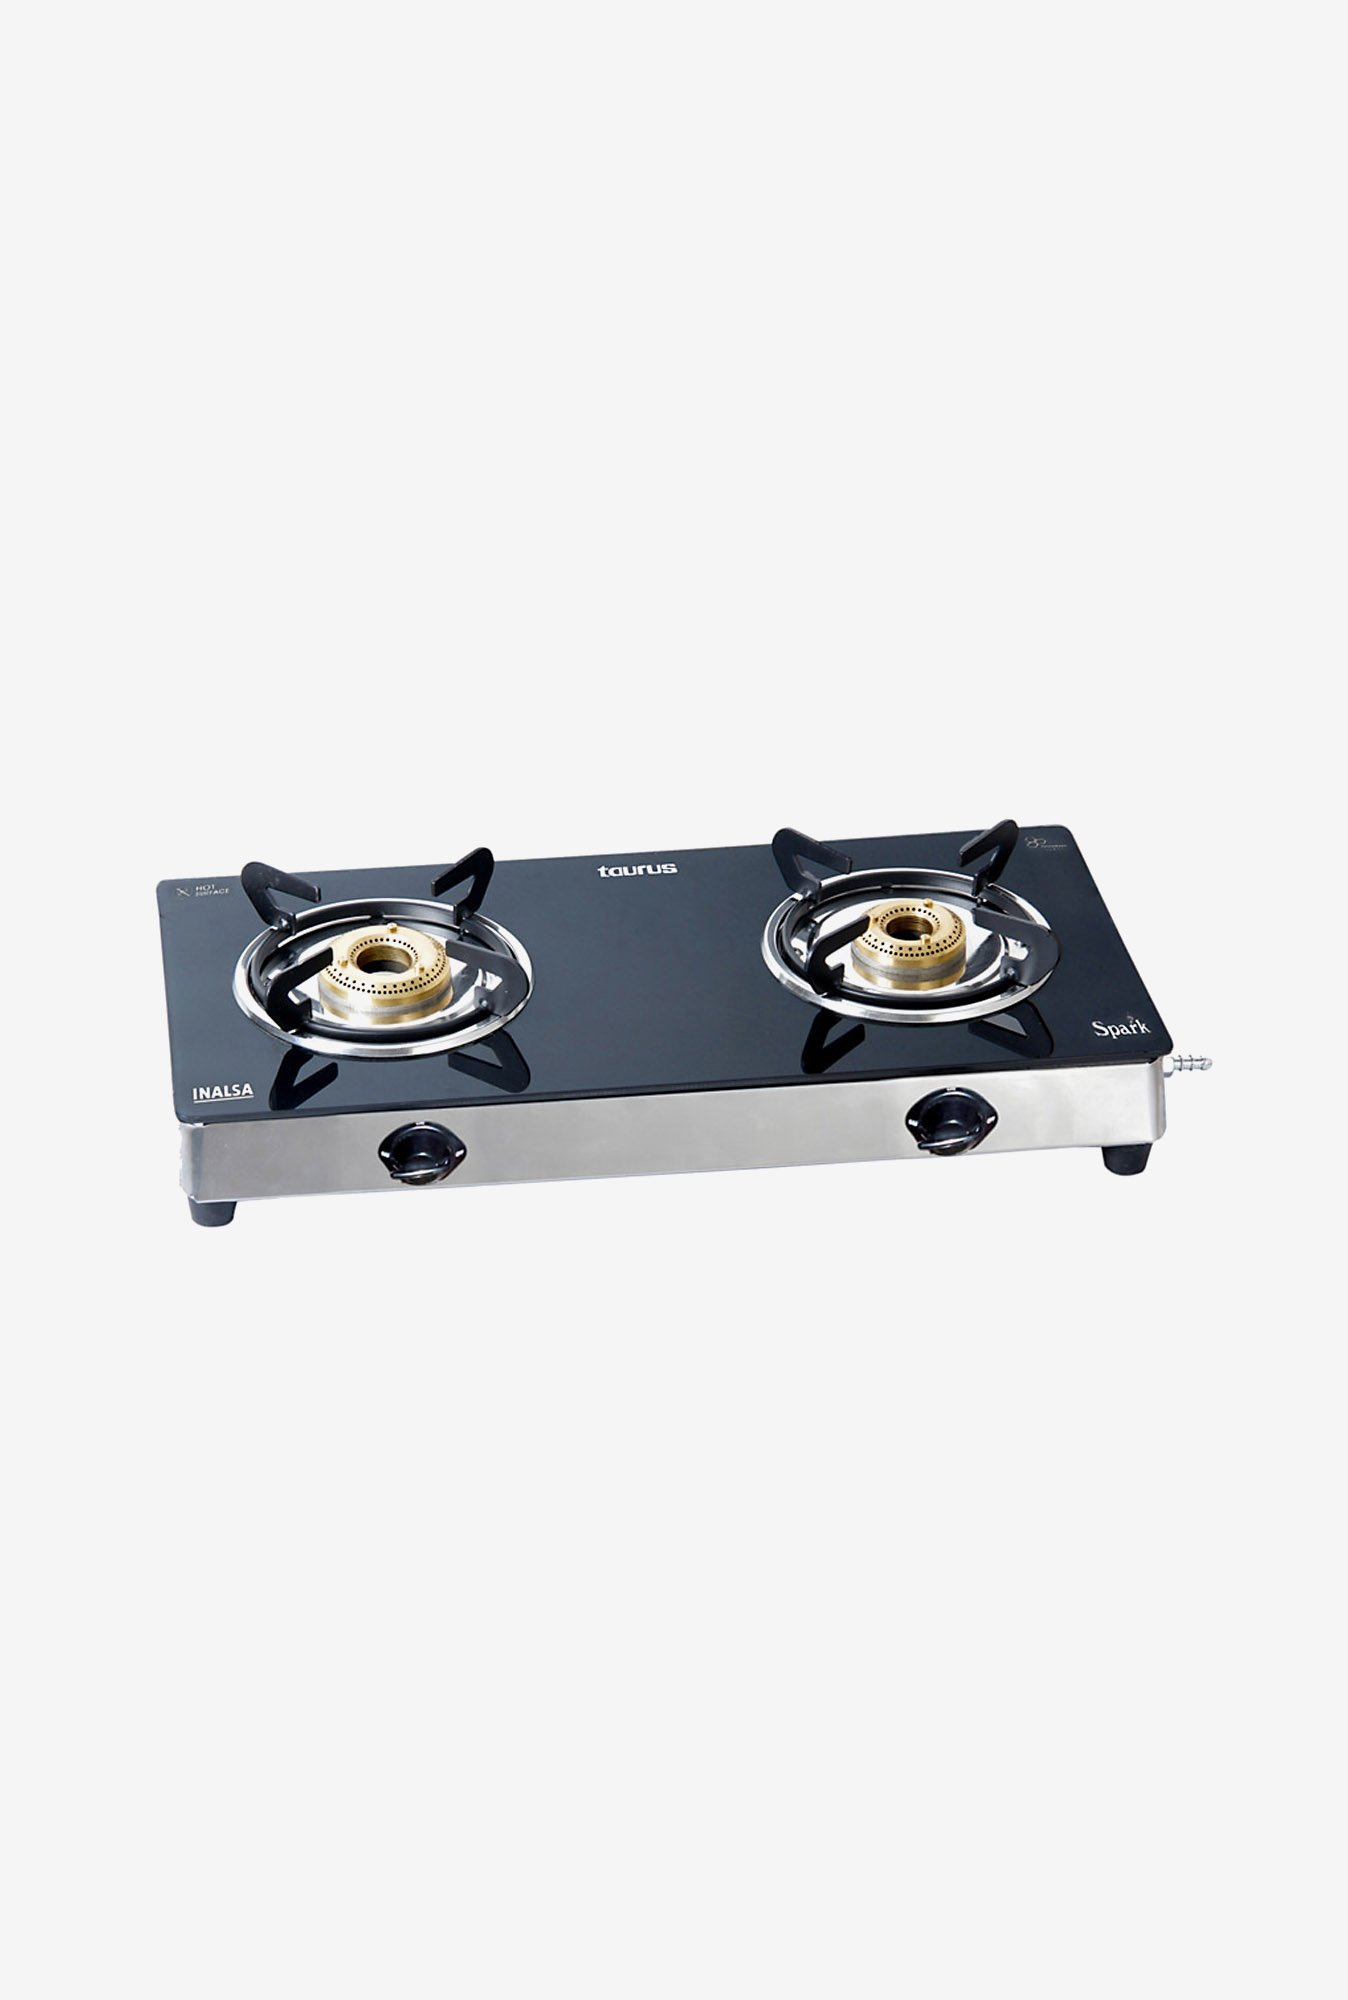 Inalsa Spark SS 2 Burner Gas Cooktop Black